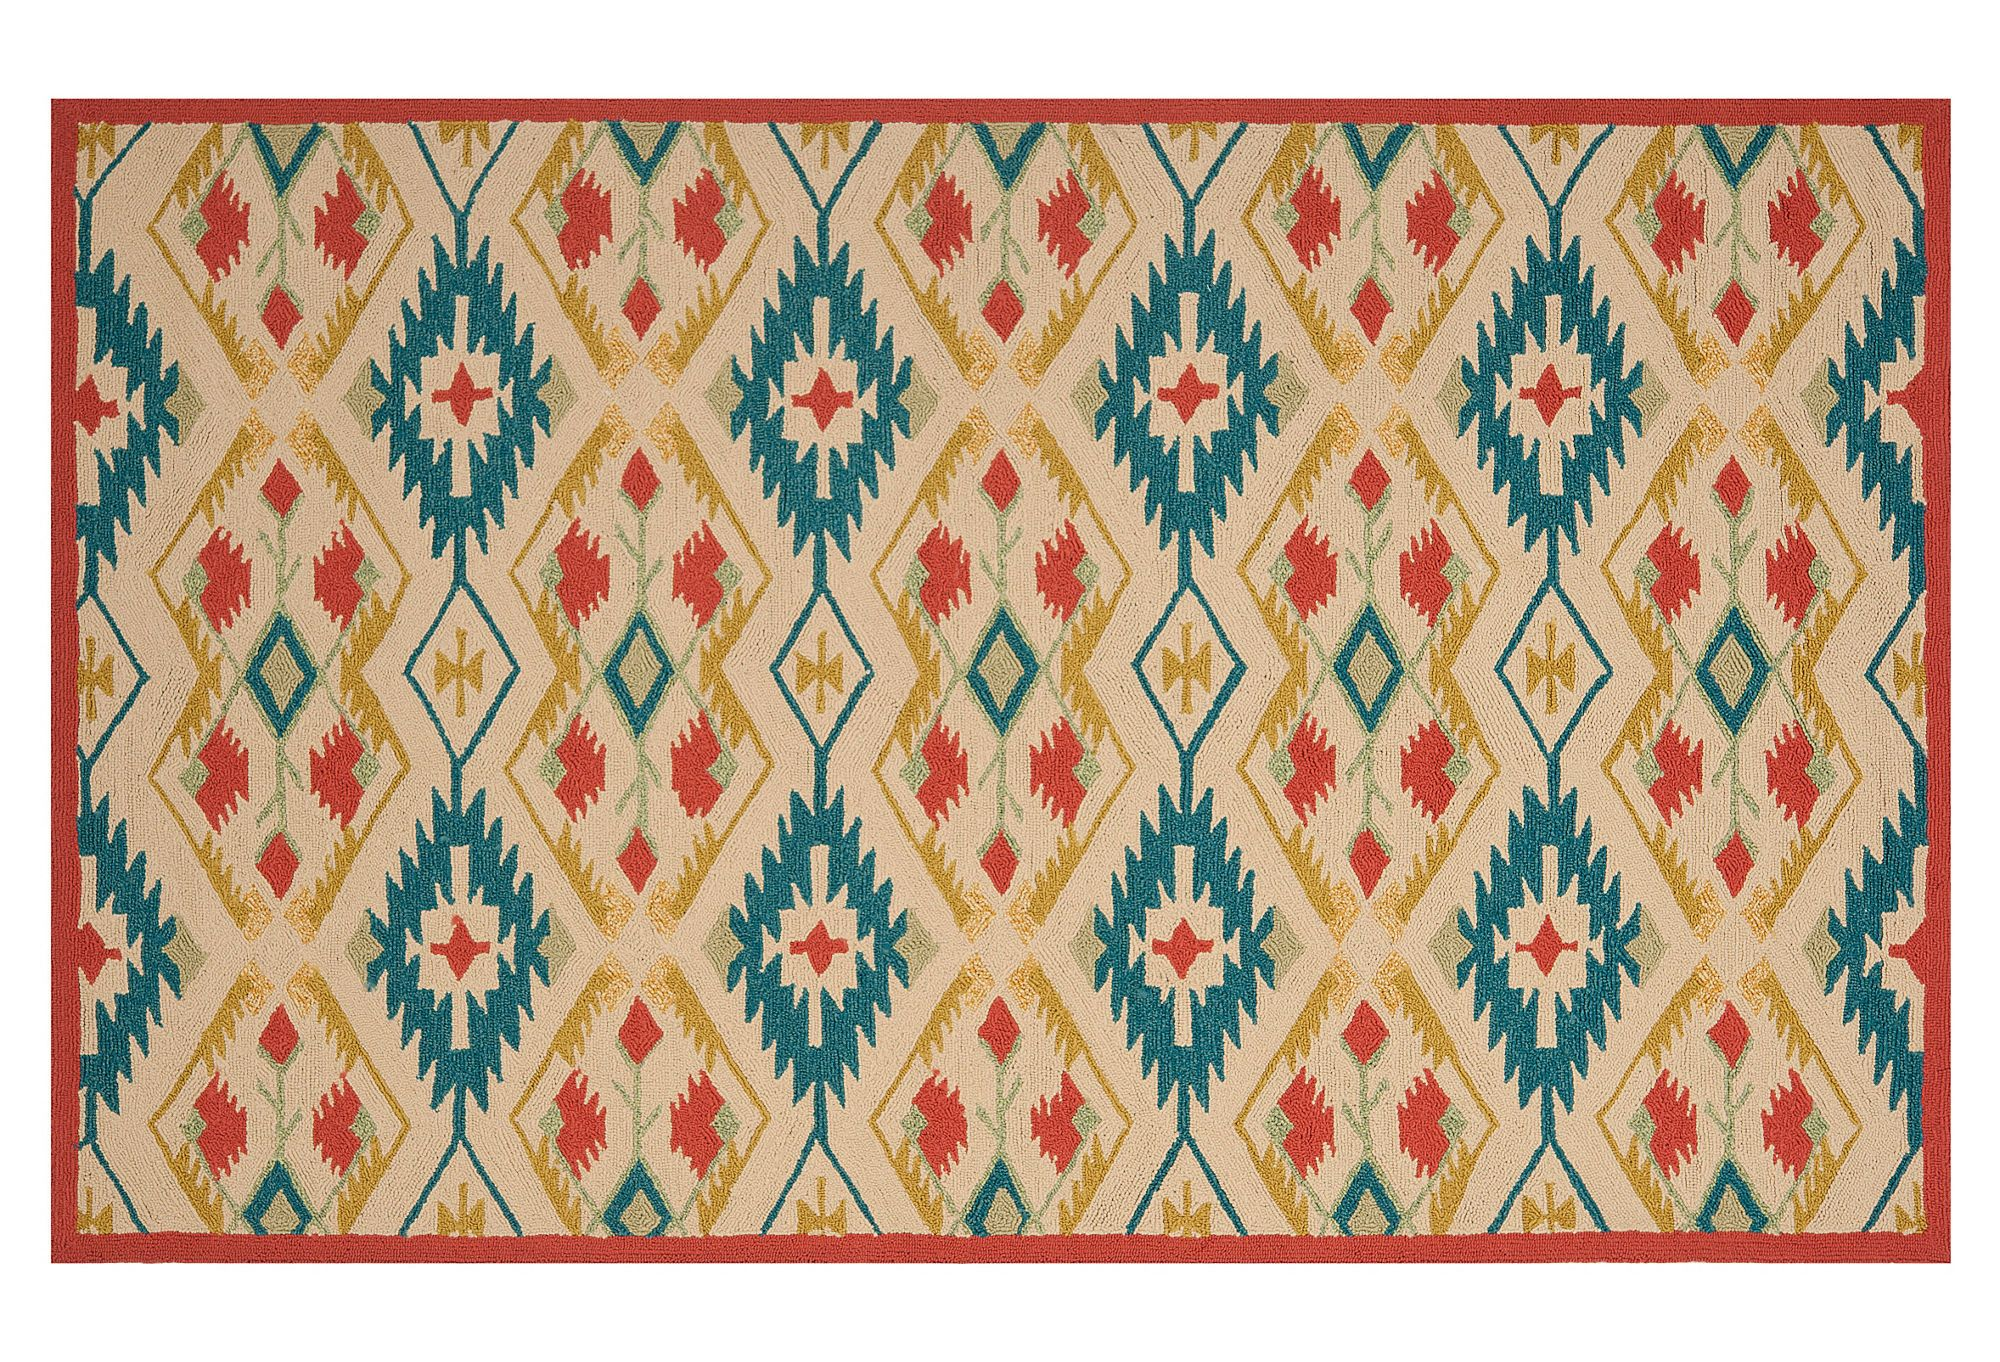 One Kings Lane Styles For All Numi Outdoor Rug Tan Teal Red